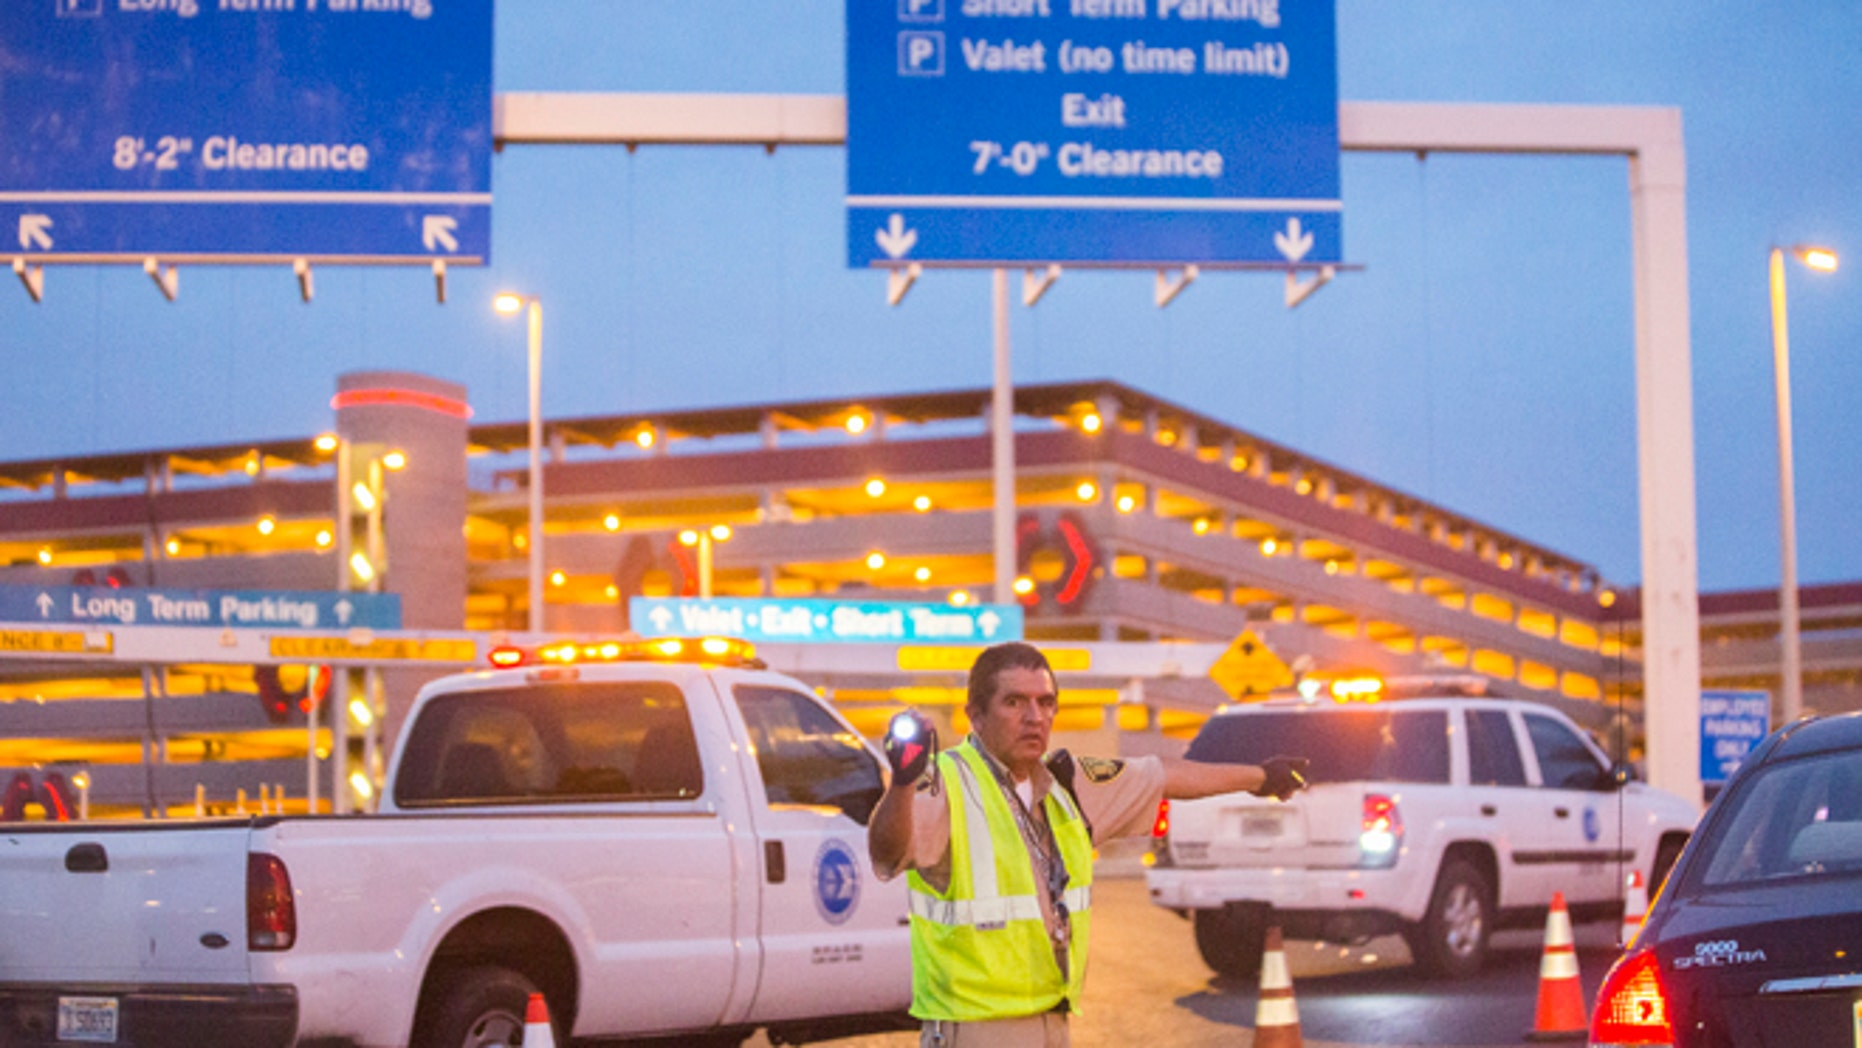 Officials redirect traffic after a shooting in a parking garage at McCarran International Airport on Monday, Sept. 19, 2016, in Las Vegas.